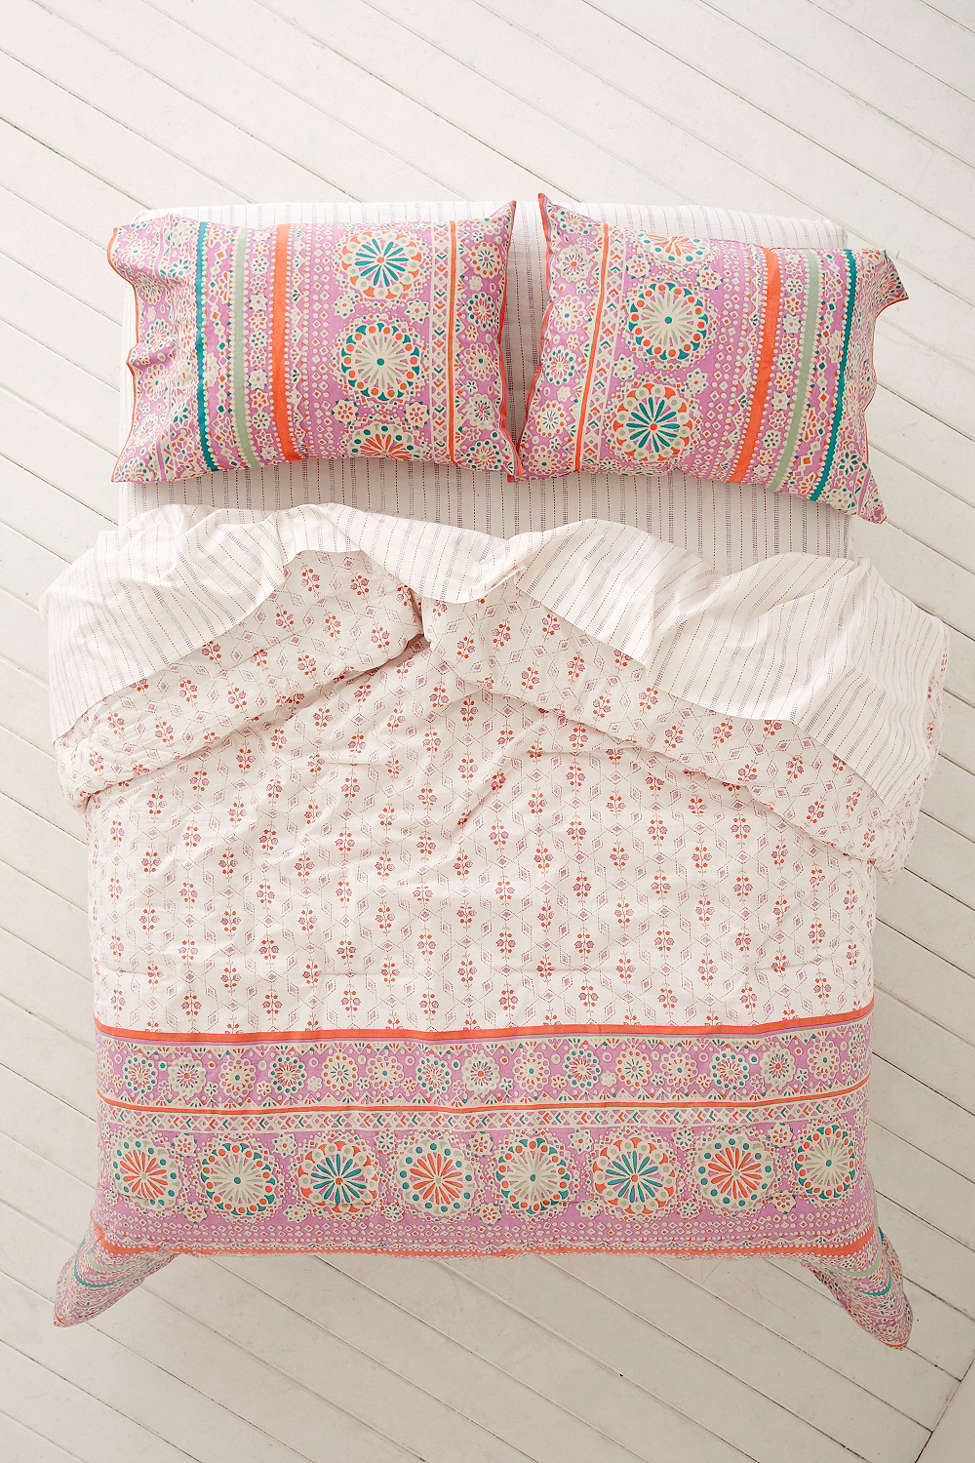 Bedding set from Urban Outfitters